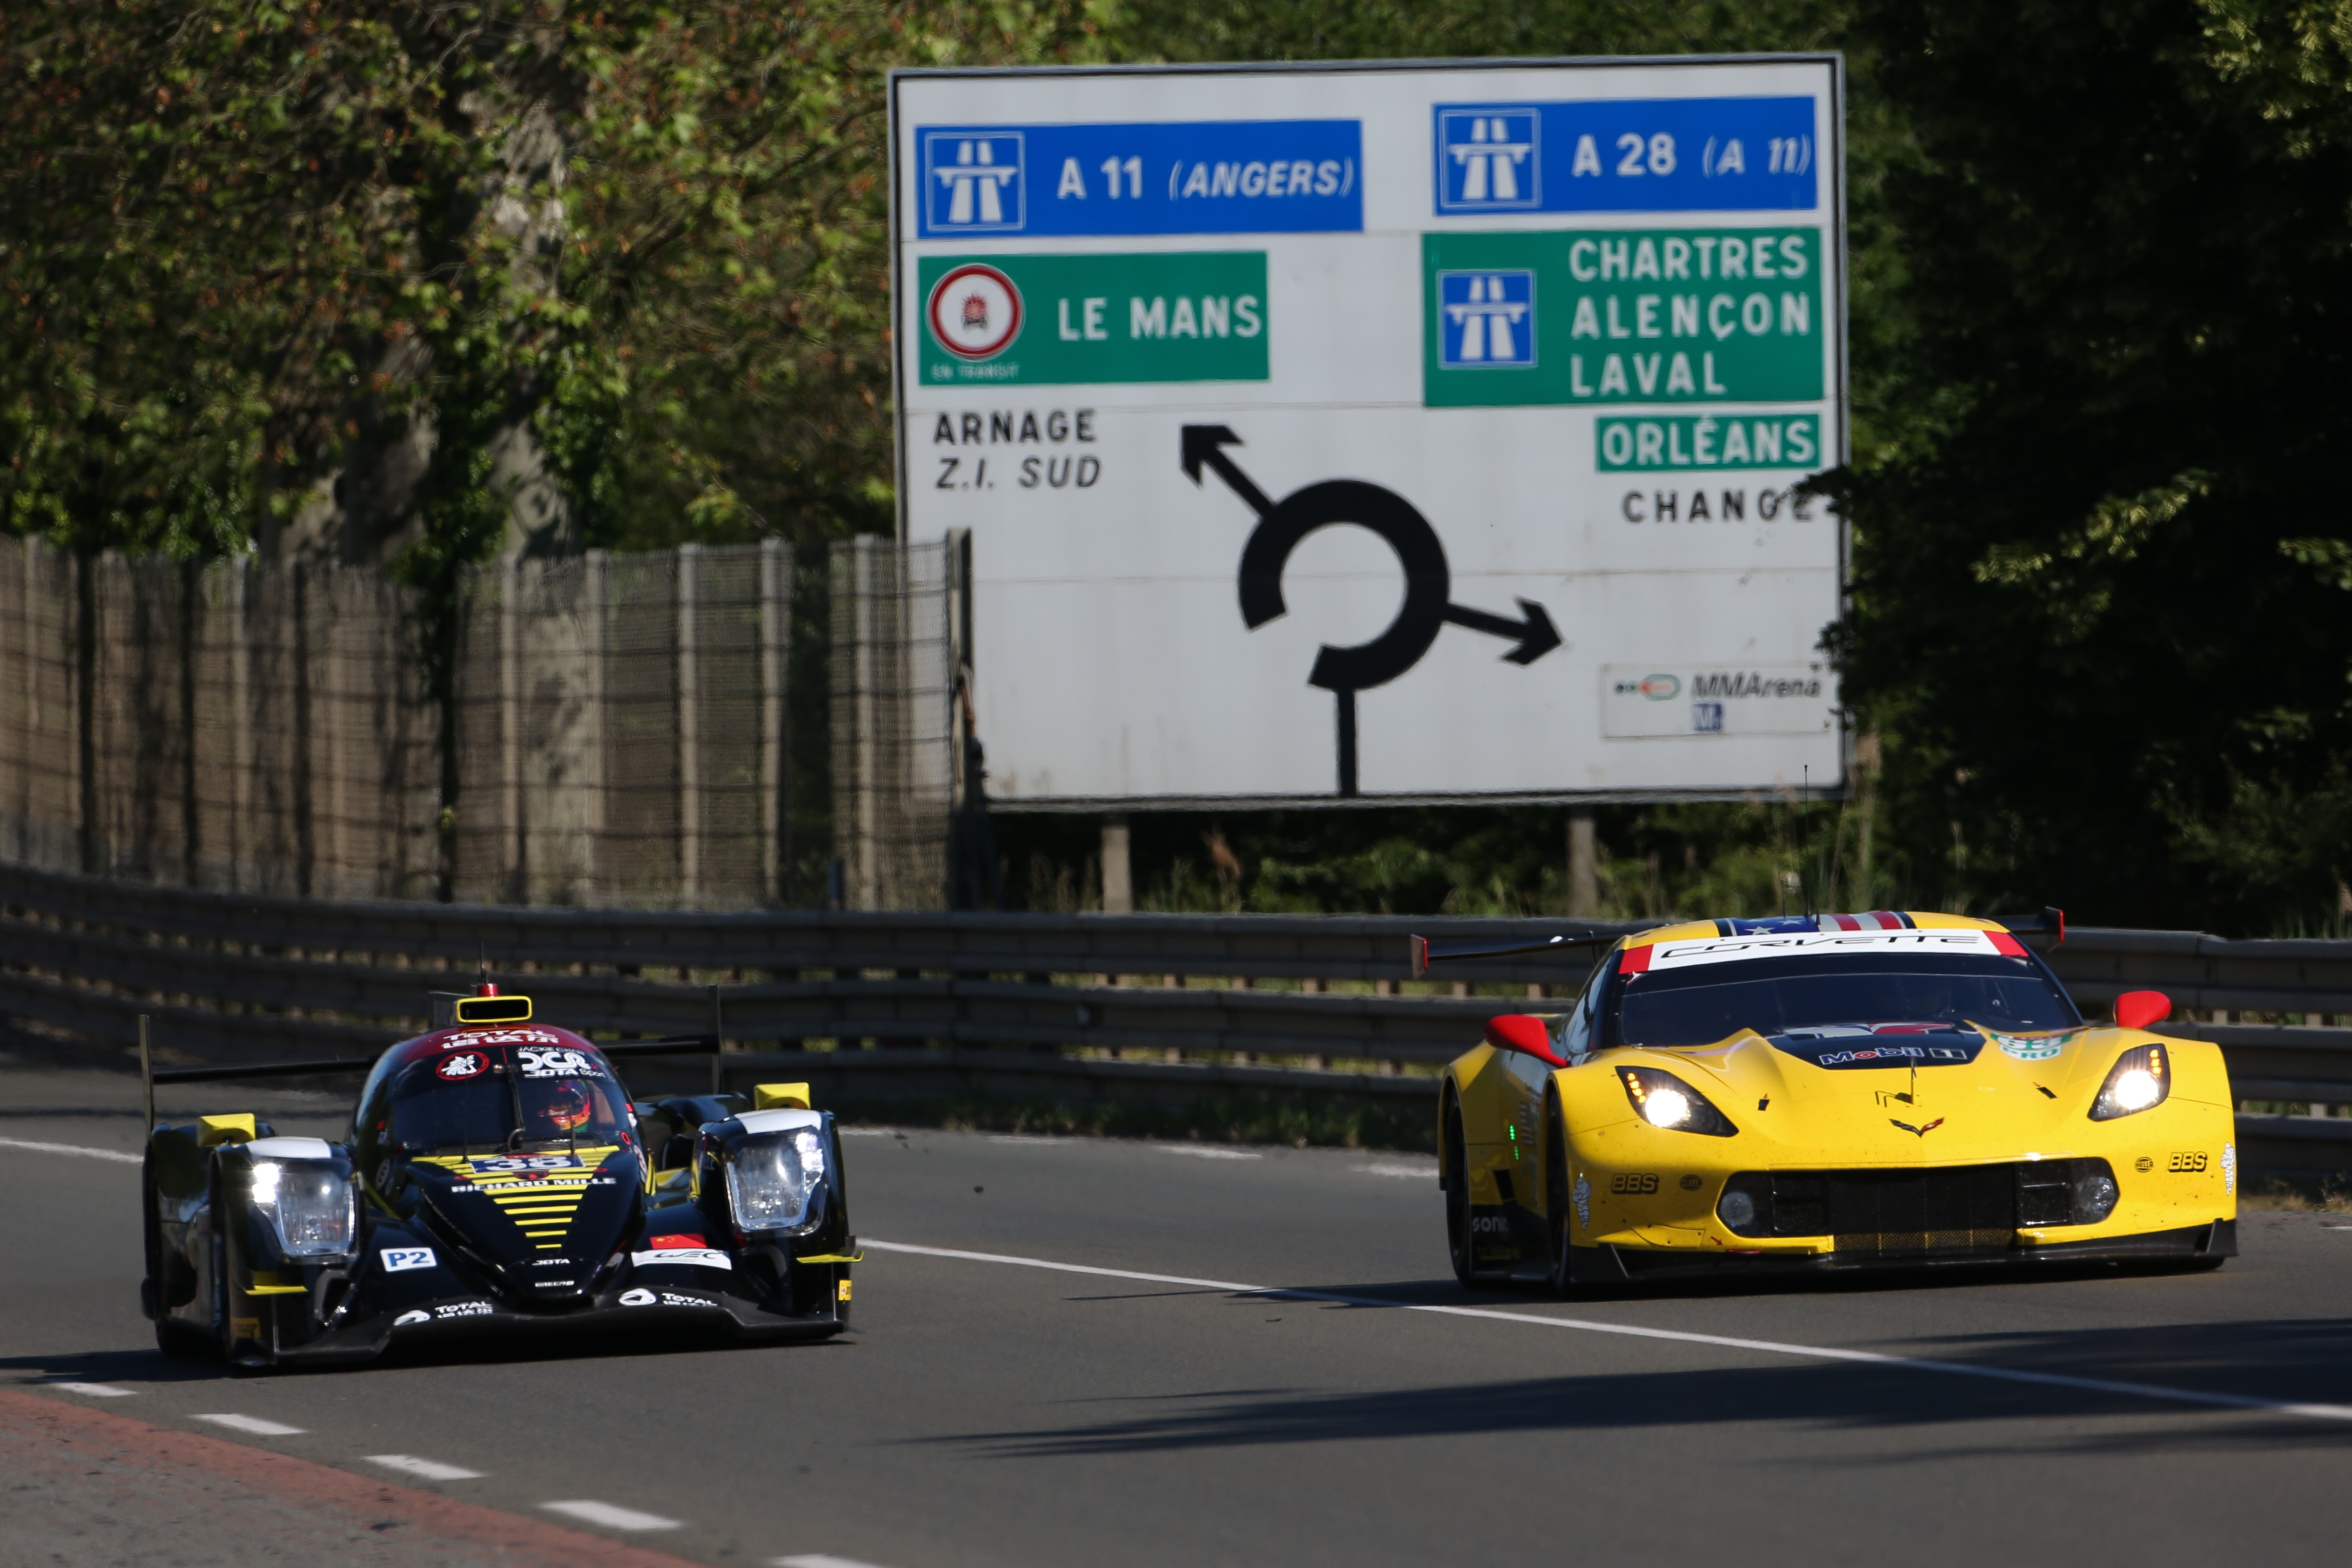 The #38 Jackie Chan DC Racing Oreca of Ho-Ping Tung, Gabriel Aubry, and Stephane Richelmi and The #63 Corvette Racing - GM Chevrolet Corvette of Jan Magnussen, Antonio Garcia, and Mike Rockenfeller in action at the Le Mans Test Day on June 2, 2019 in Le M